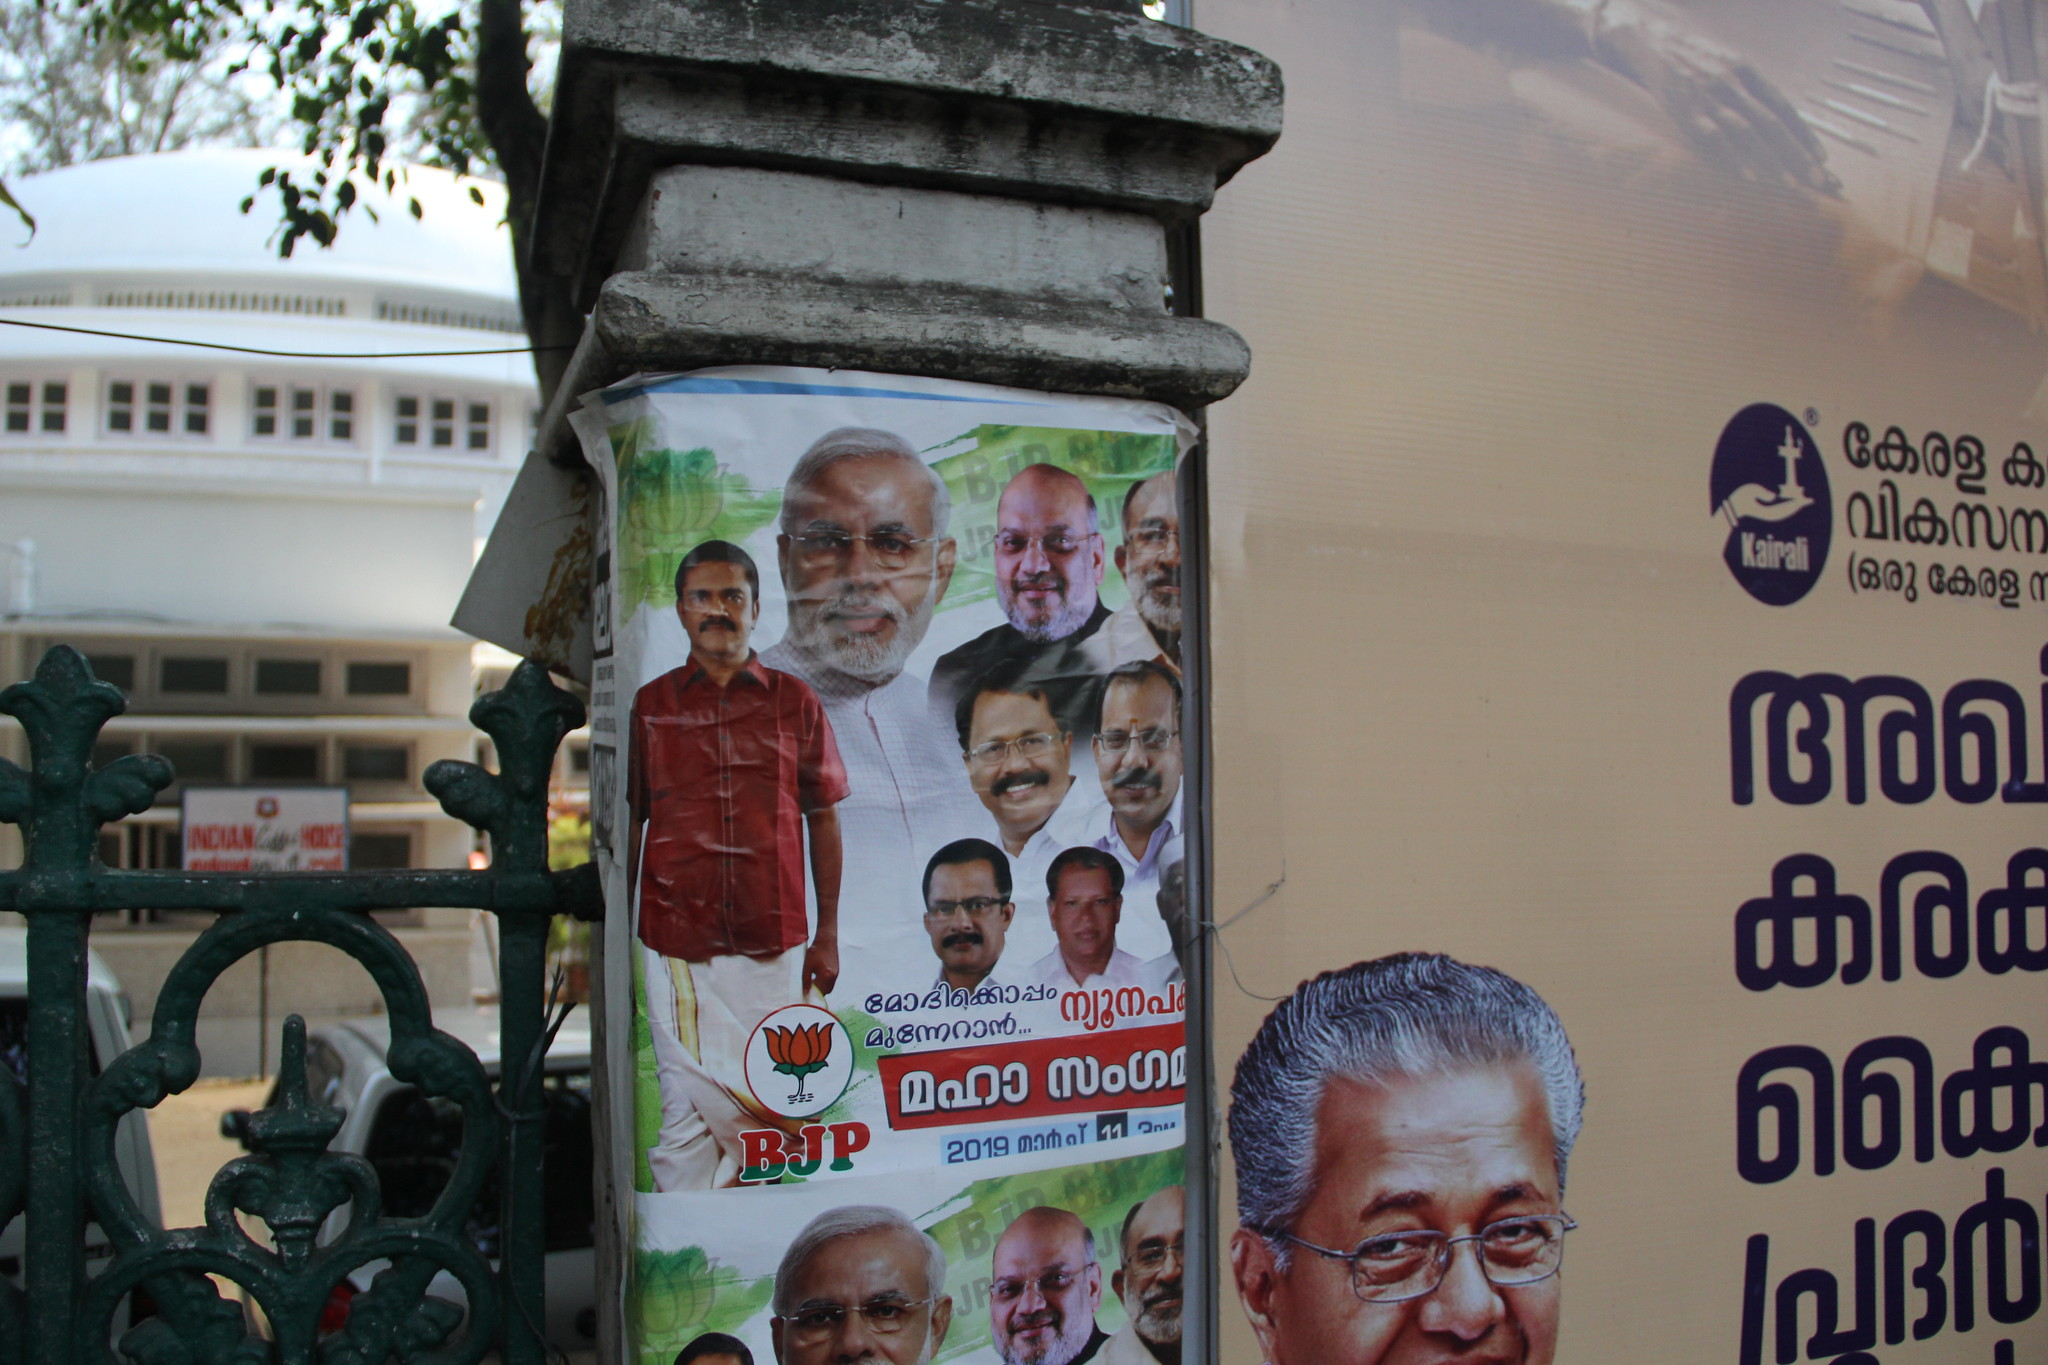 A BJP political poster in Thiruvananthapuram. (Photo by: Diana Kruzman)